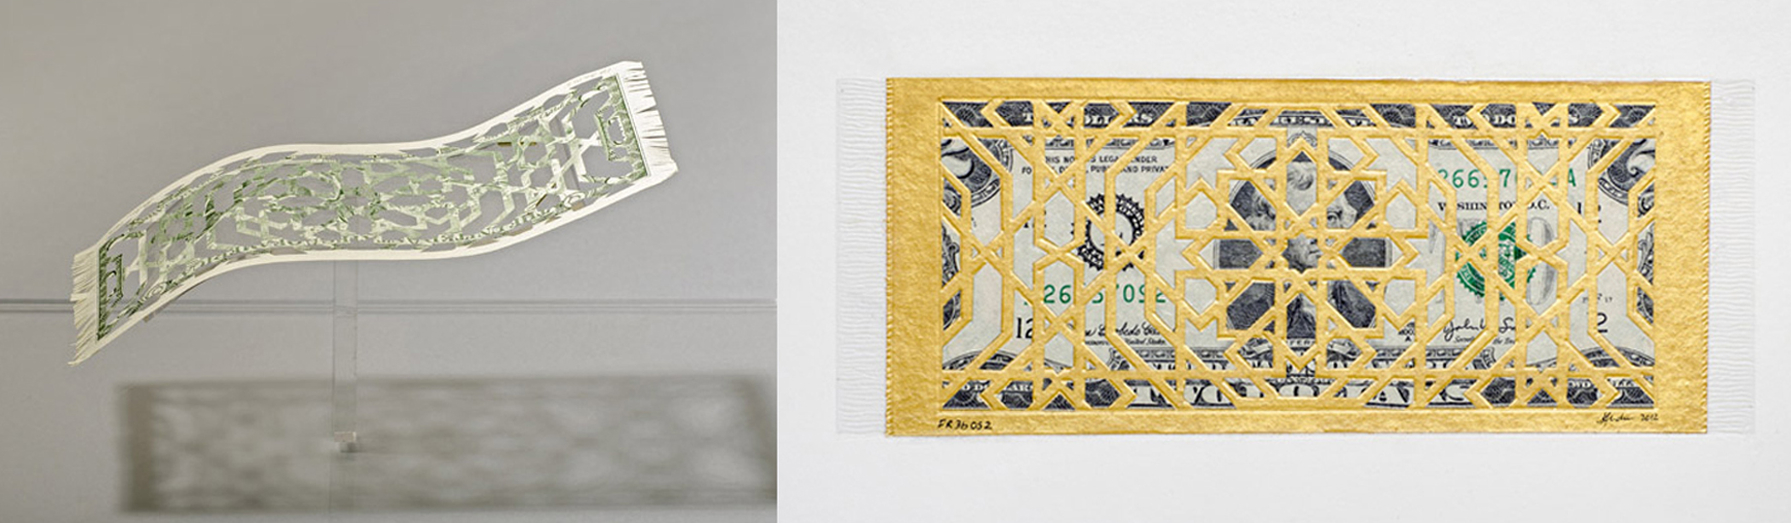 Deconstruction of the Myth of the Flying Rug , 2012 - (ongoing), diptych, Handcut currency collage on gold inked Vasli paper and US$ bill in custom Perspex vitrine, Dimenstions variable.